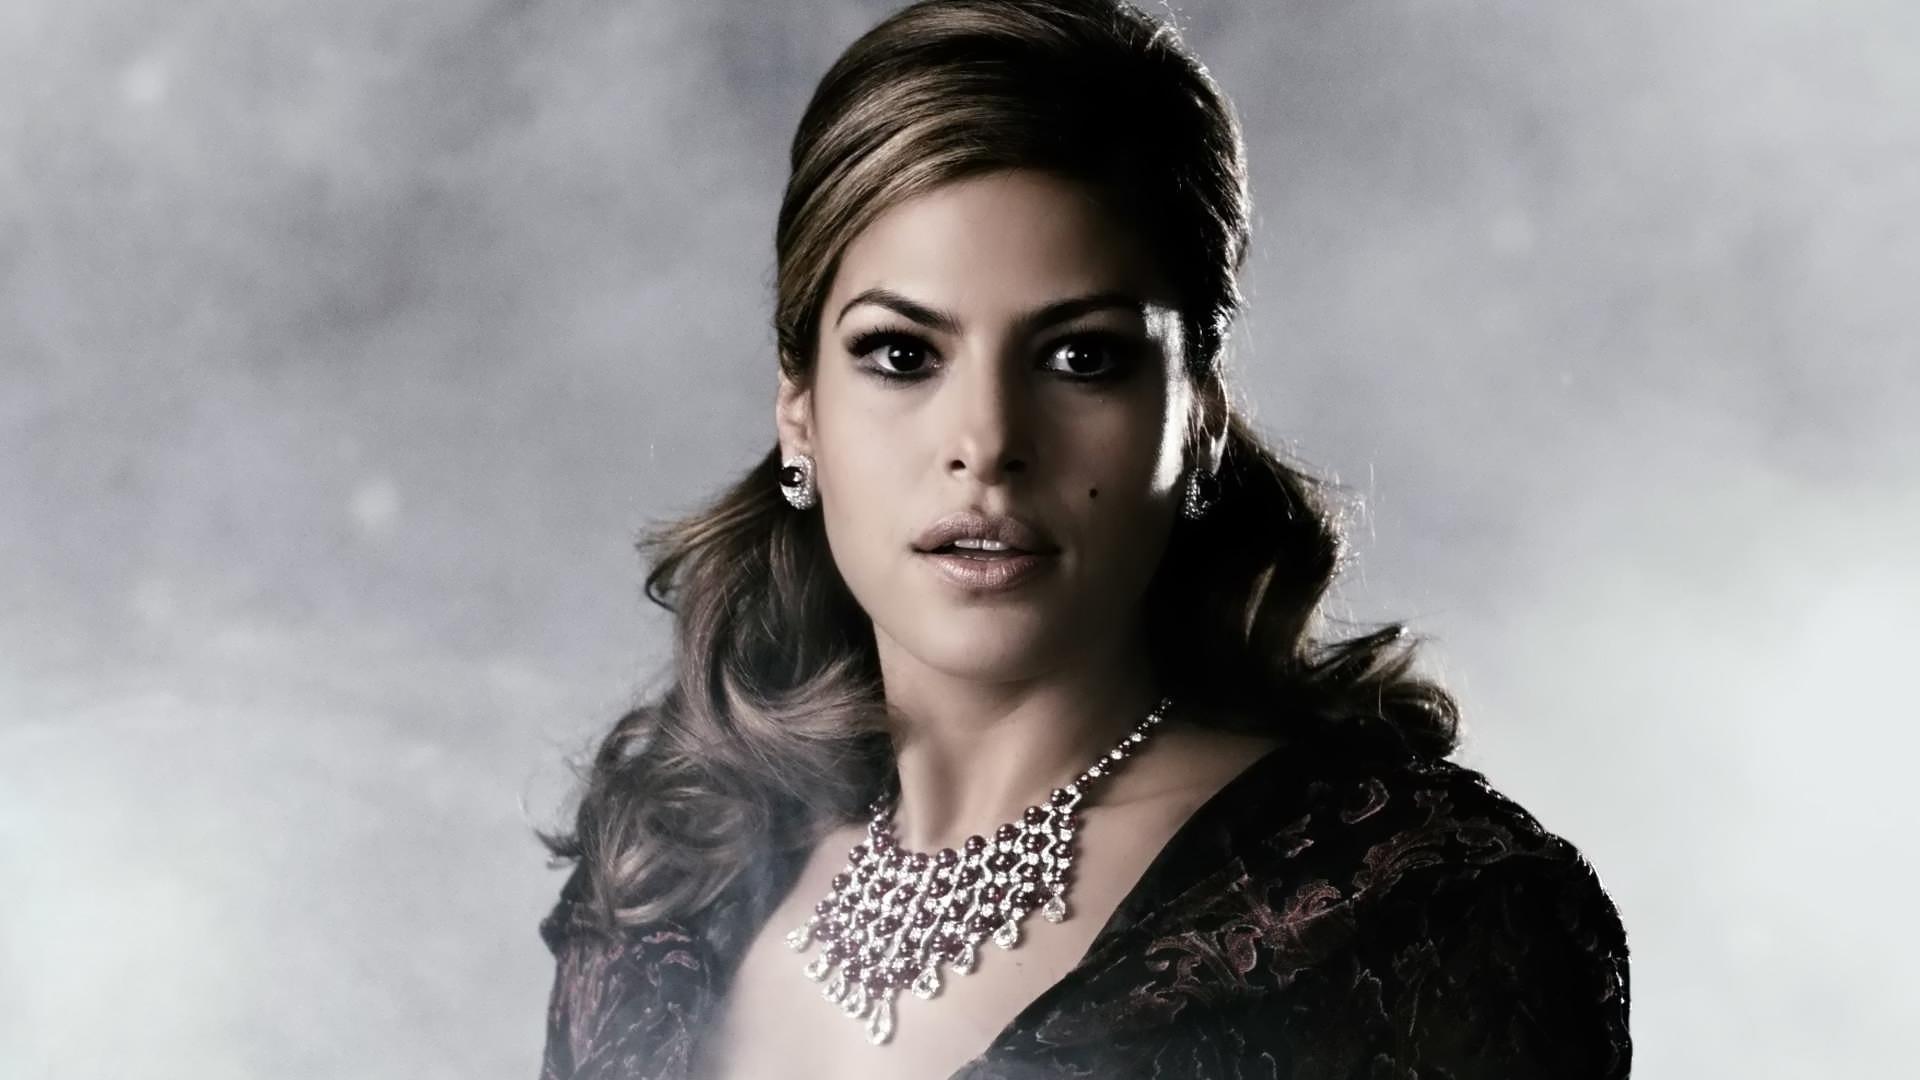 Sick Wallpapers For Iphone 6 Eva Mendes Wallpapers High Quality Download Free